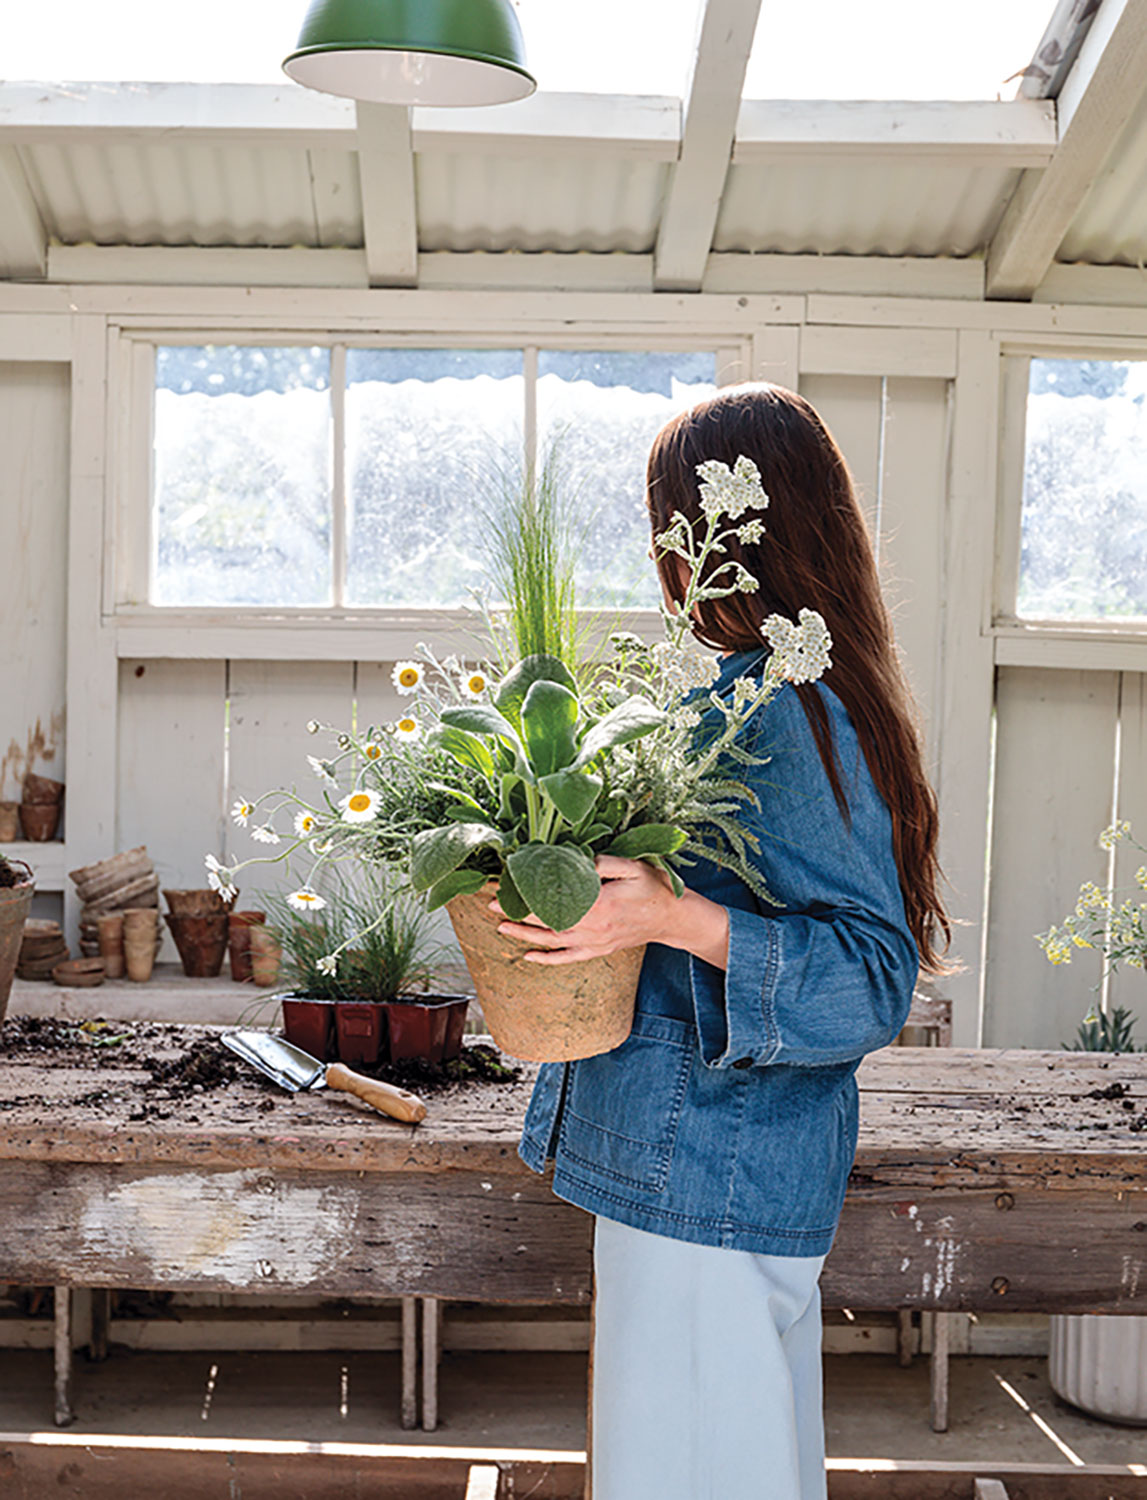 Kristen Caissie stands in a white, light filled potting shed, holding a centerpiece arrangement of potted plants